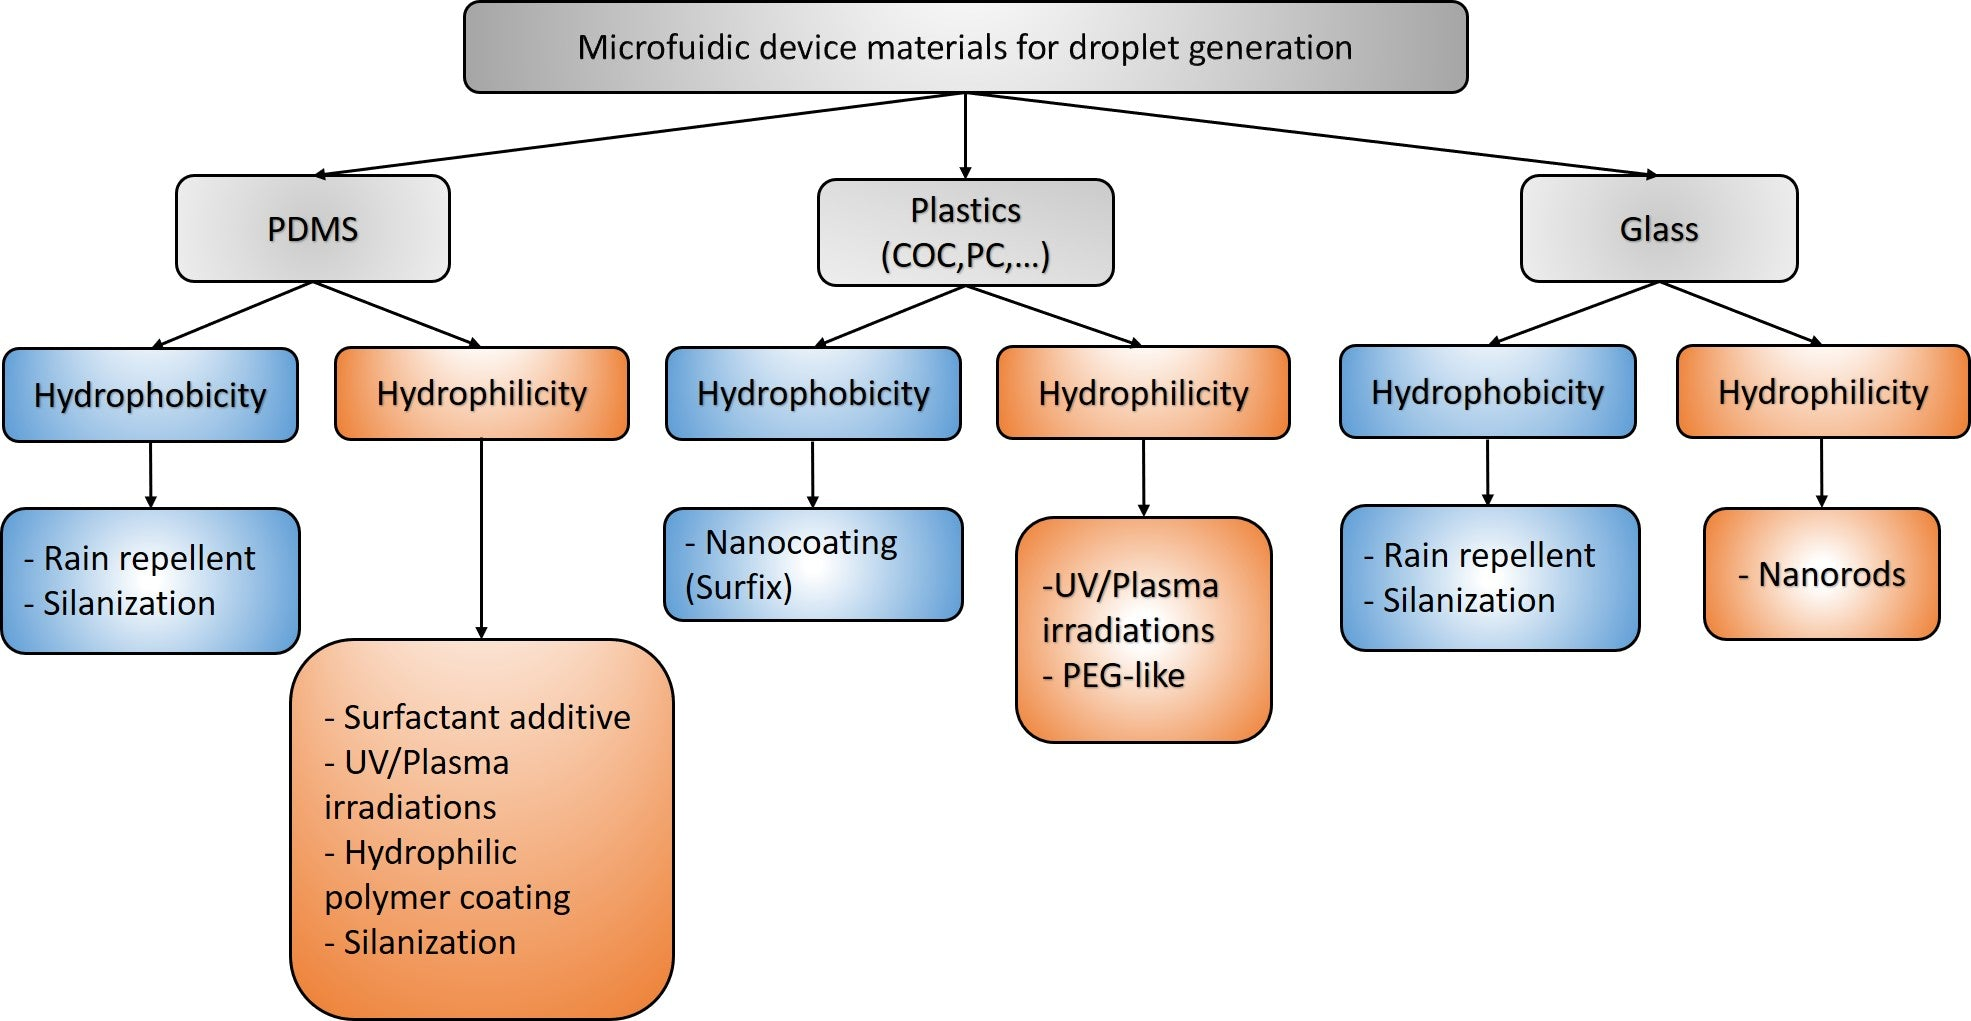 Summary of the hydrophilic and hydrophobic coatings for droplet generation in microfluidics